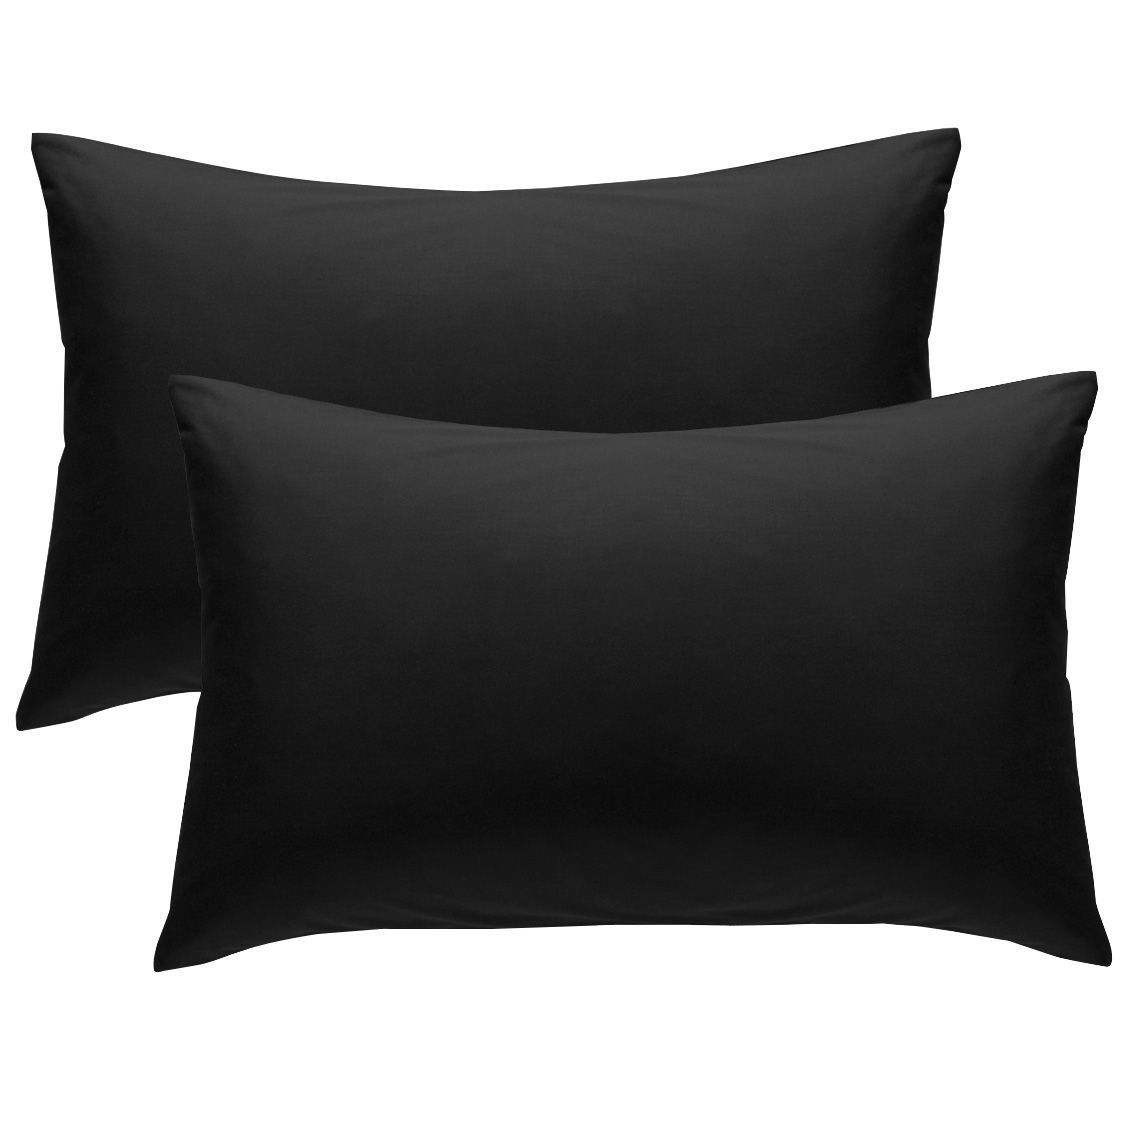 Chartwell Plain Housewife Black Pillow Case Pack Of 2